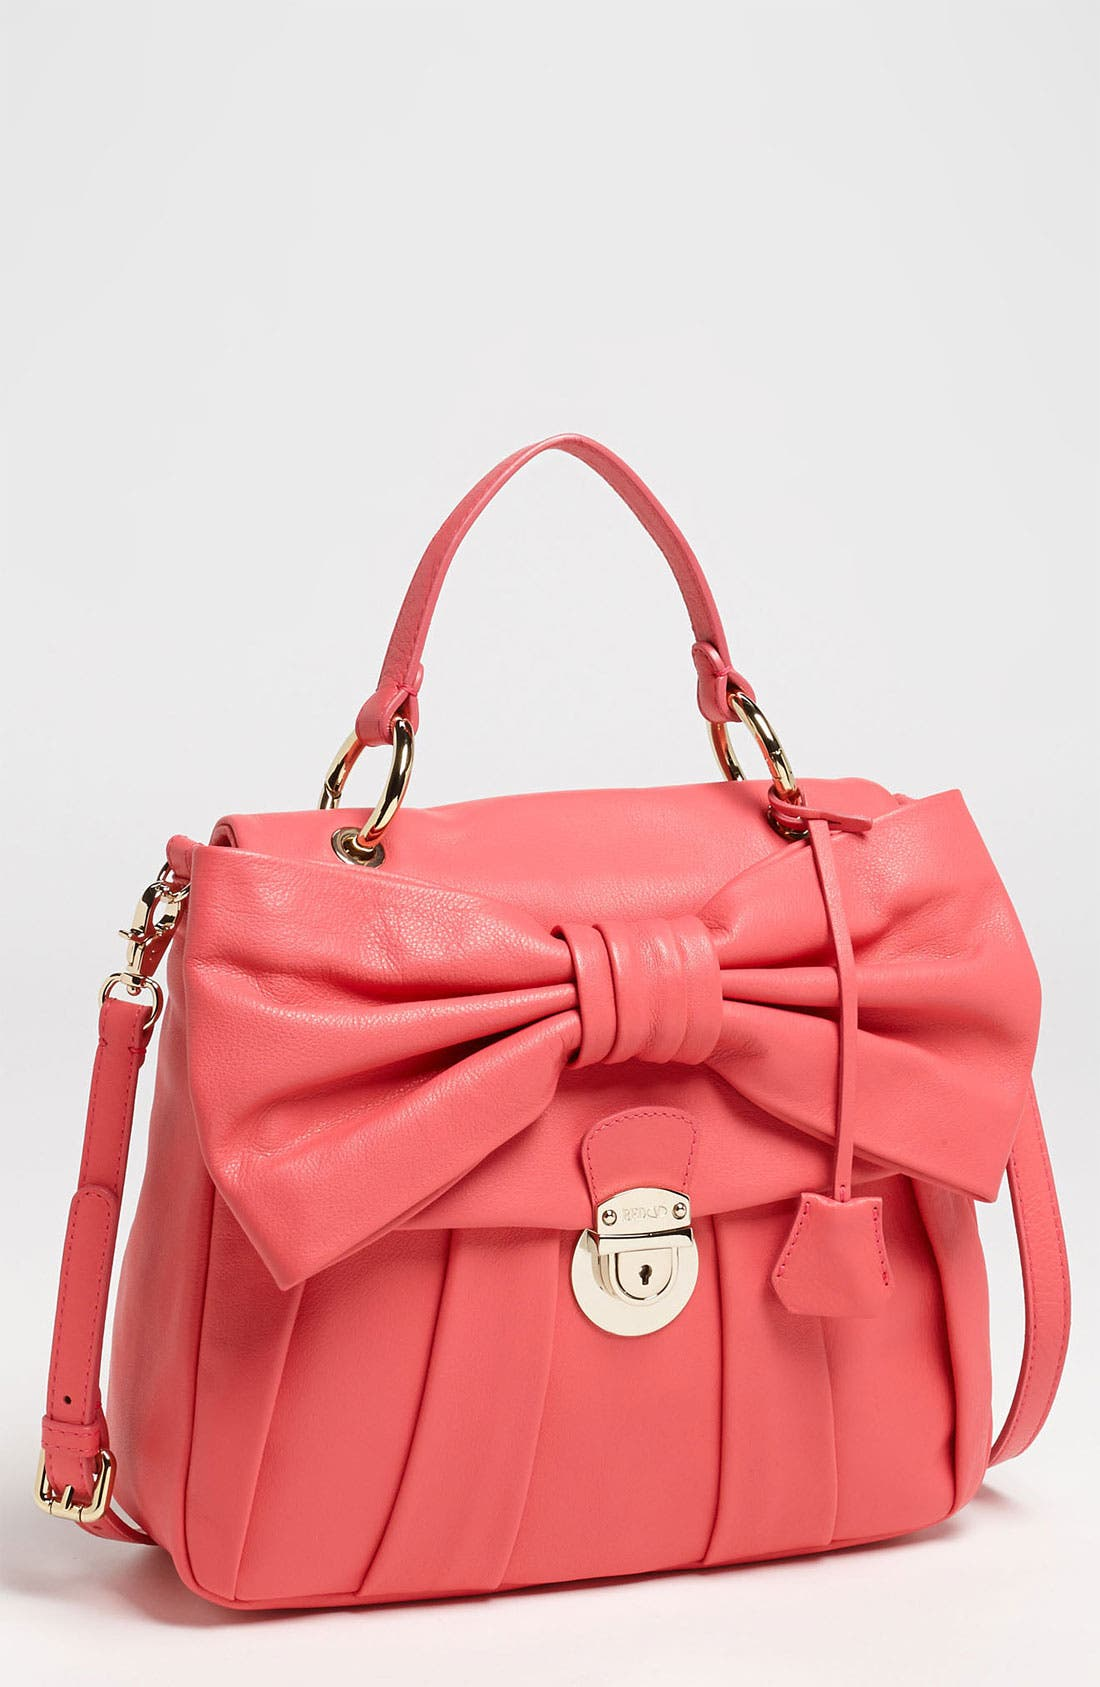 Alternate Image 1 Selected - RED Valentino 'Bow - Small' Leather Satchel